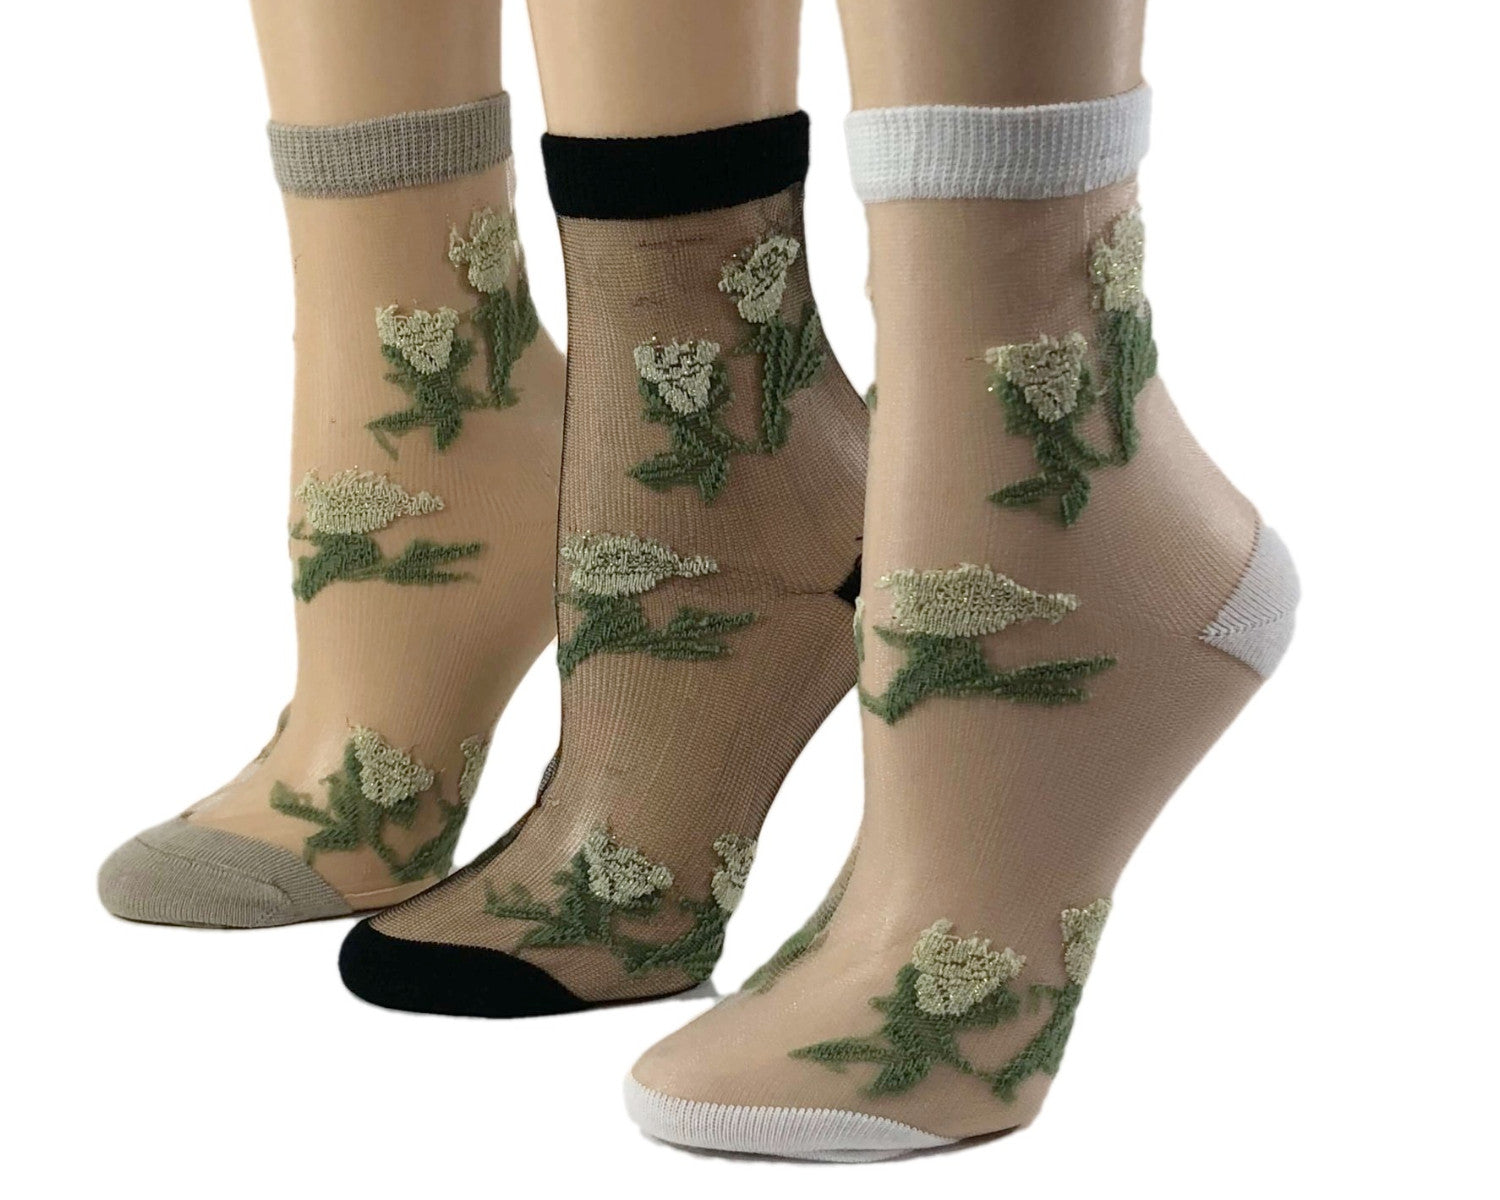 Green Flowers Sheer Socks (Pack of 3 Pairs) - Global Trendz Fashion®